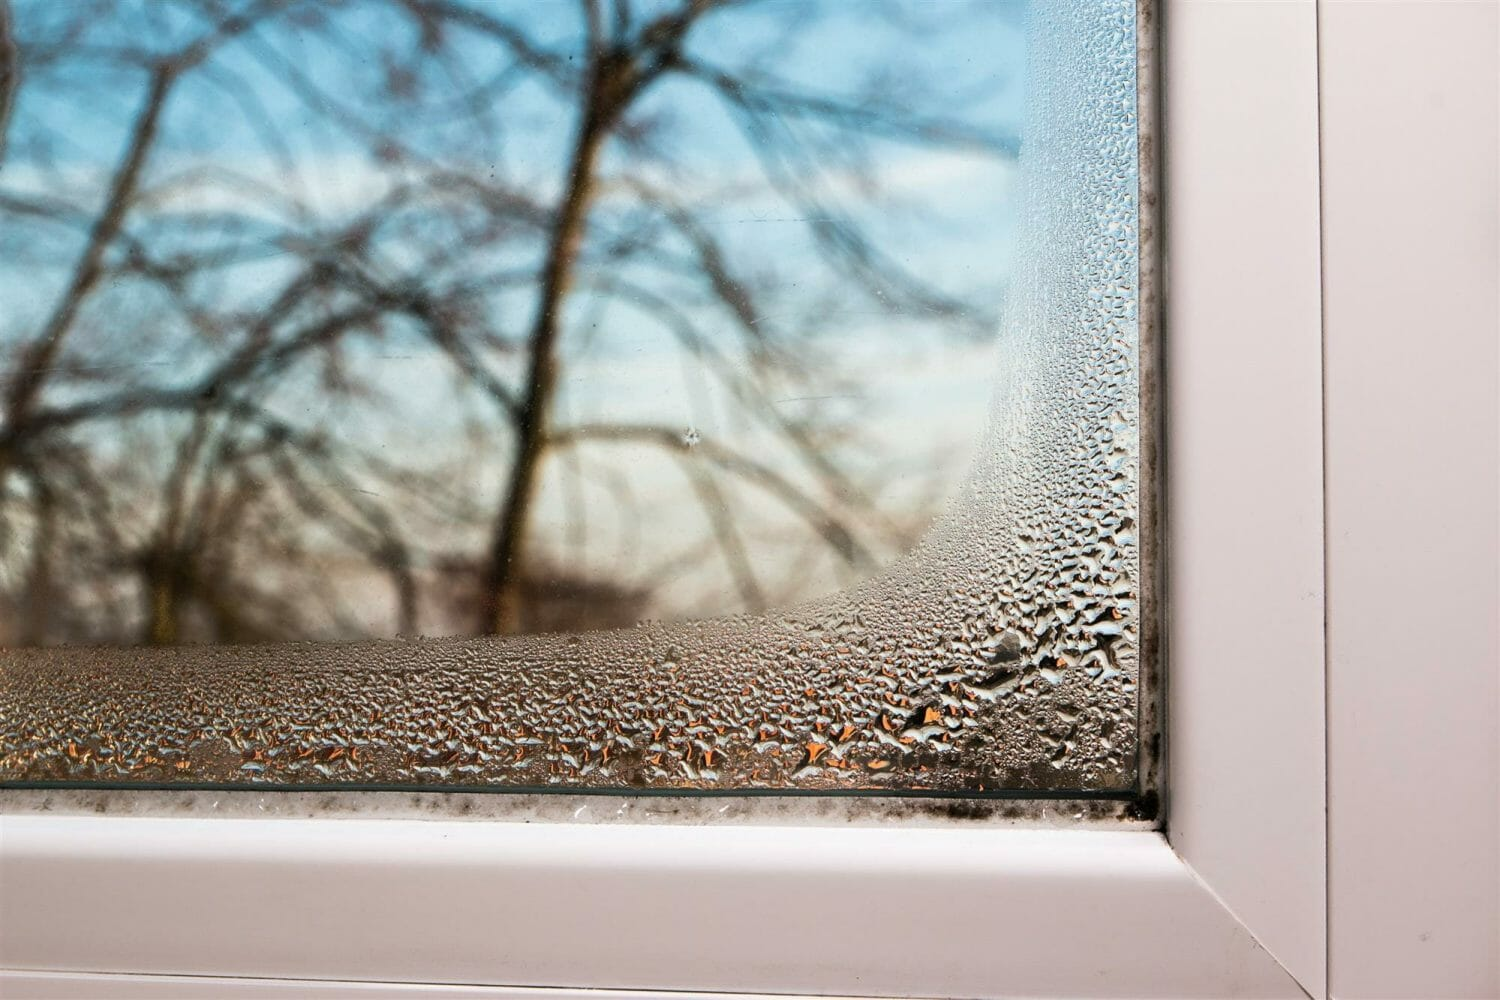 How to Deal with Humidity in Your Home